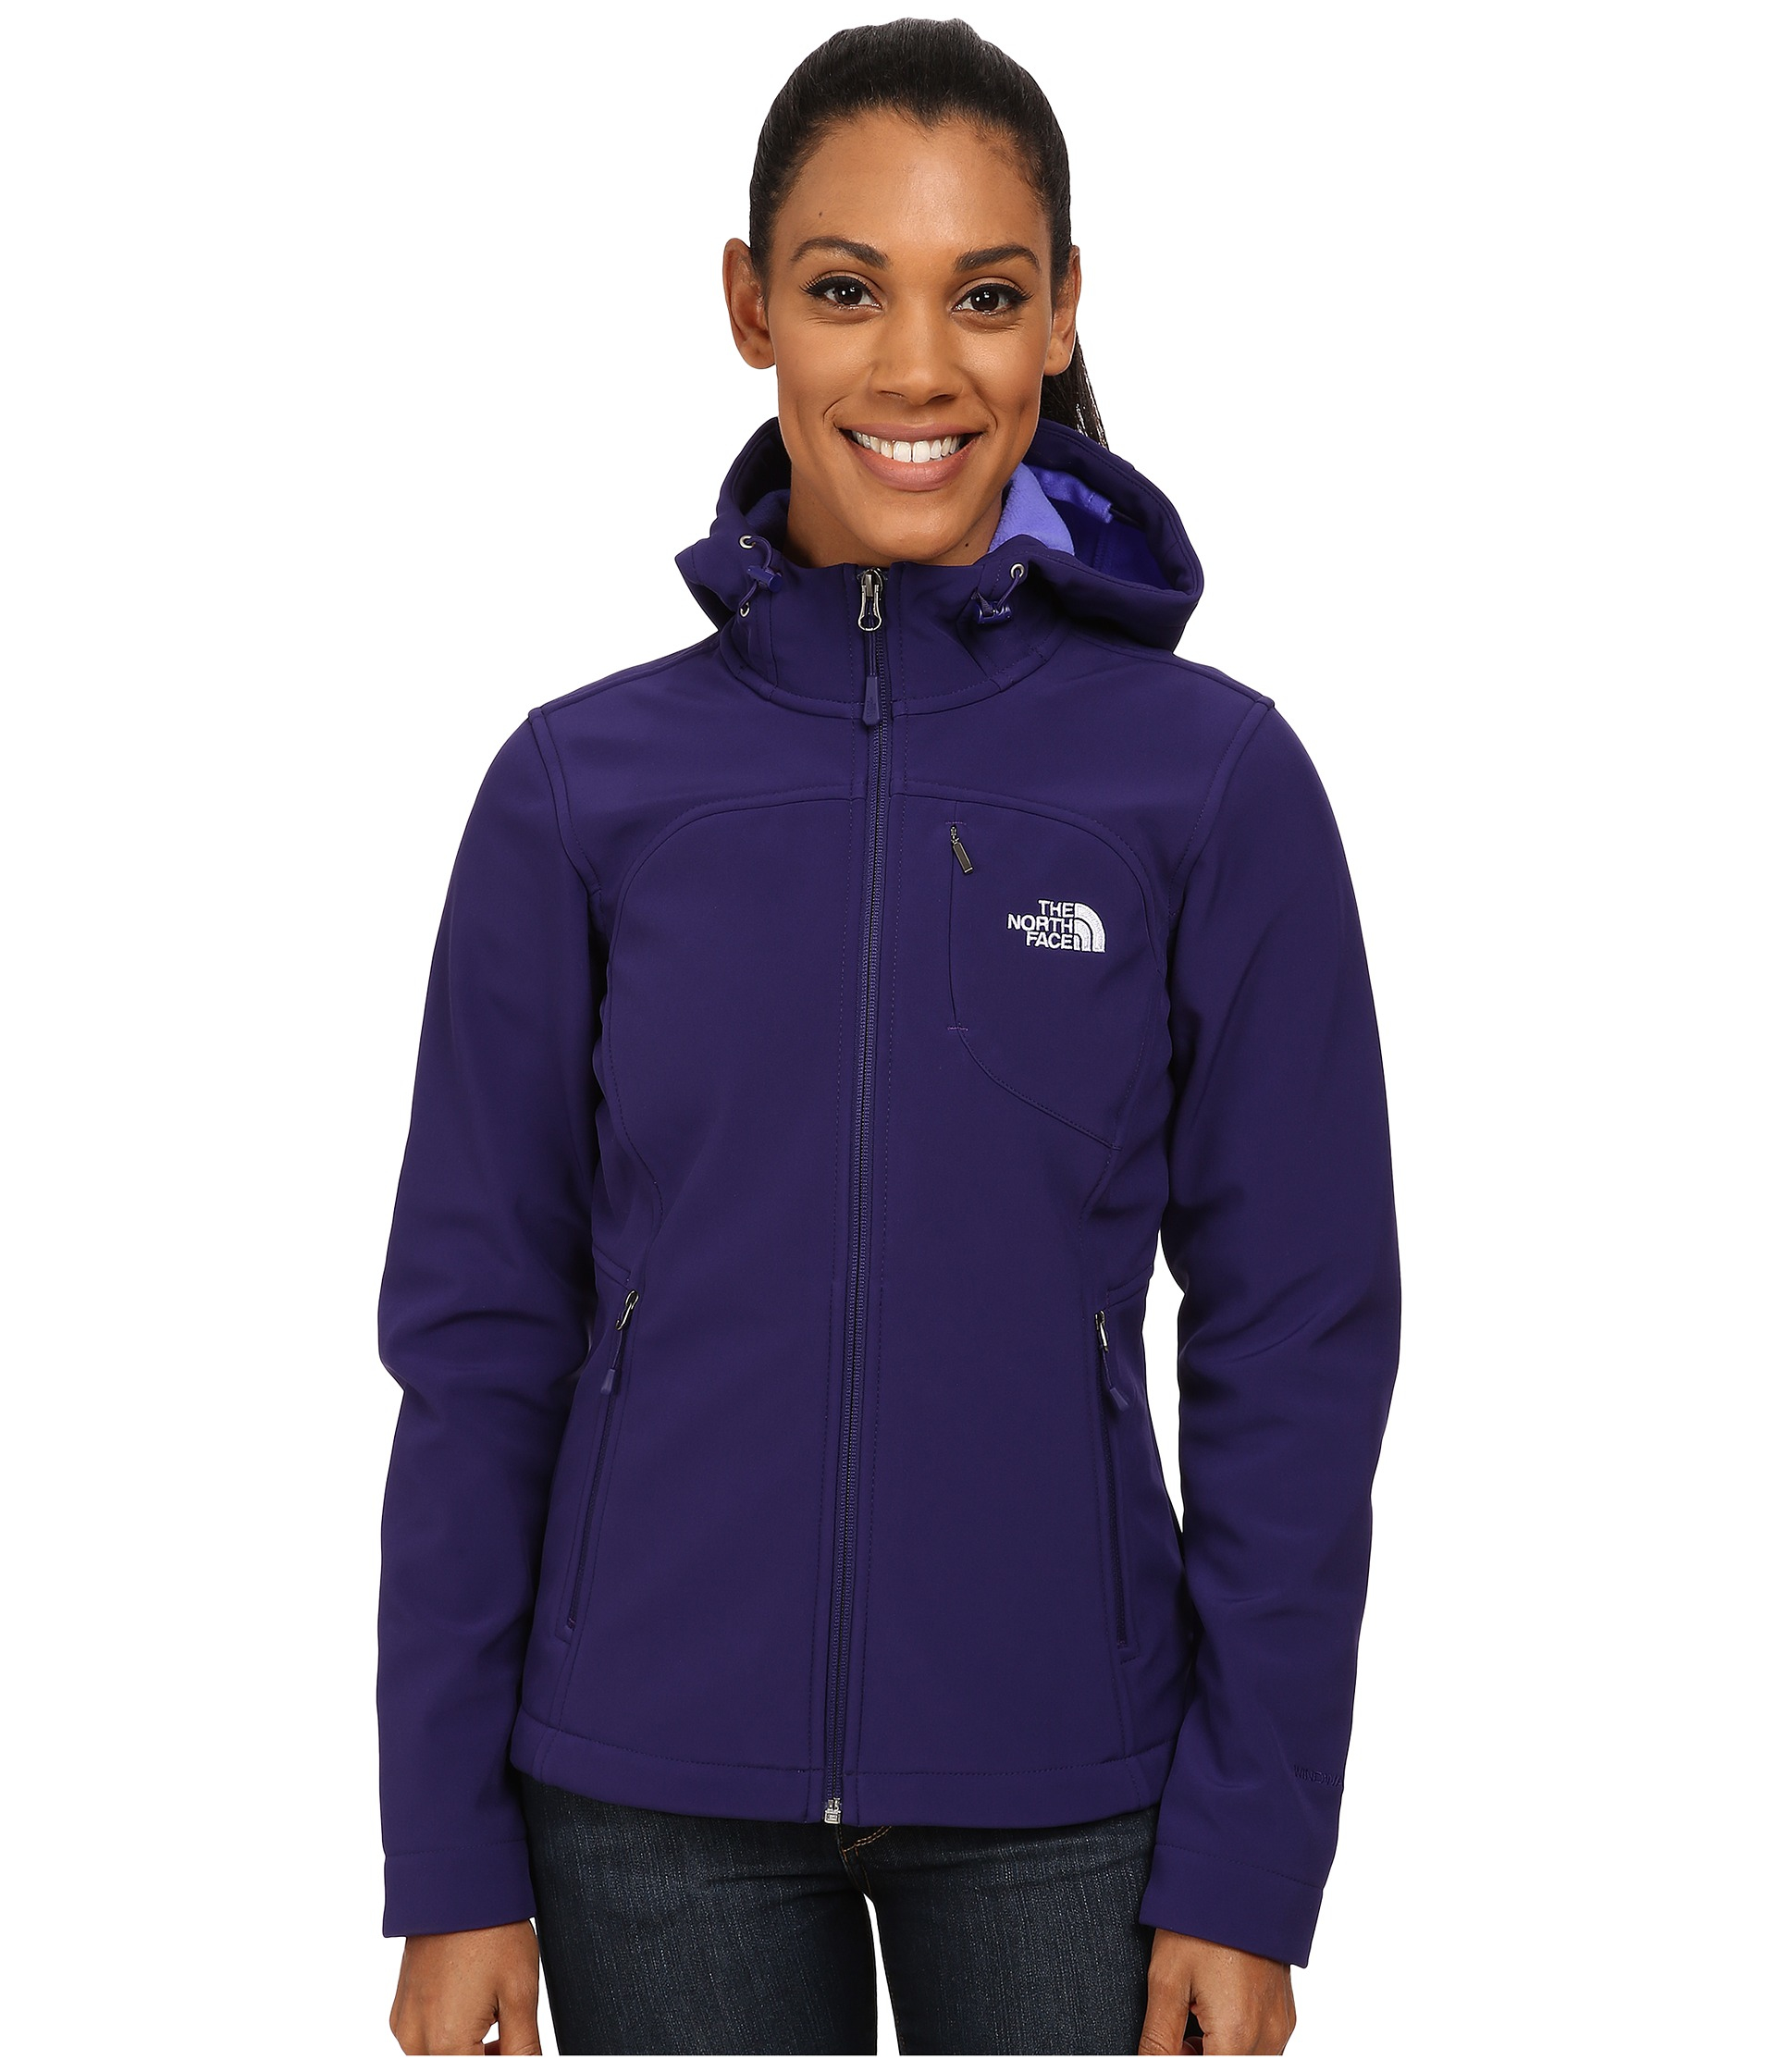 cf9085d1394 Lyst - The North Face Apex Bionic Hoodie in Purple